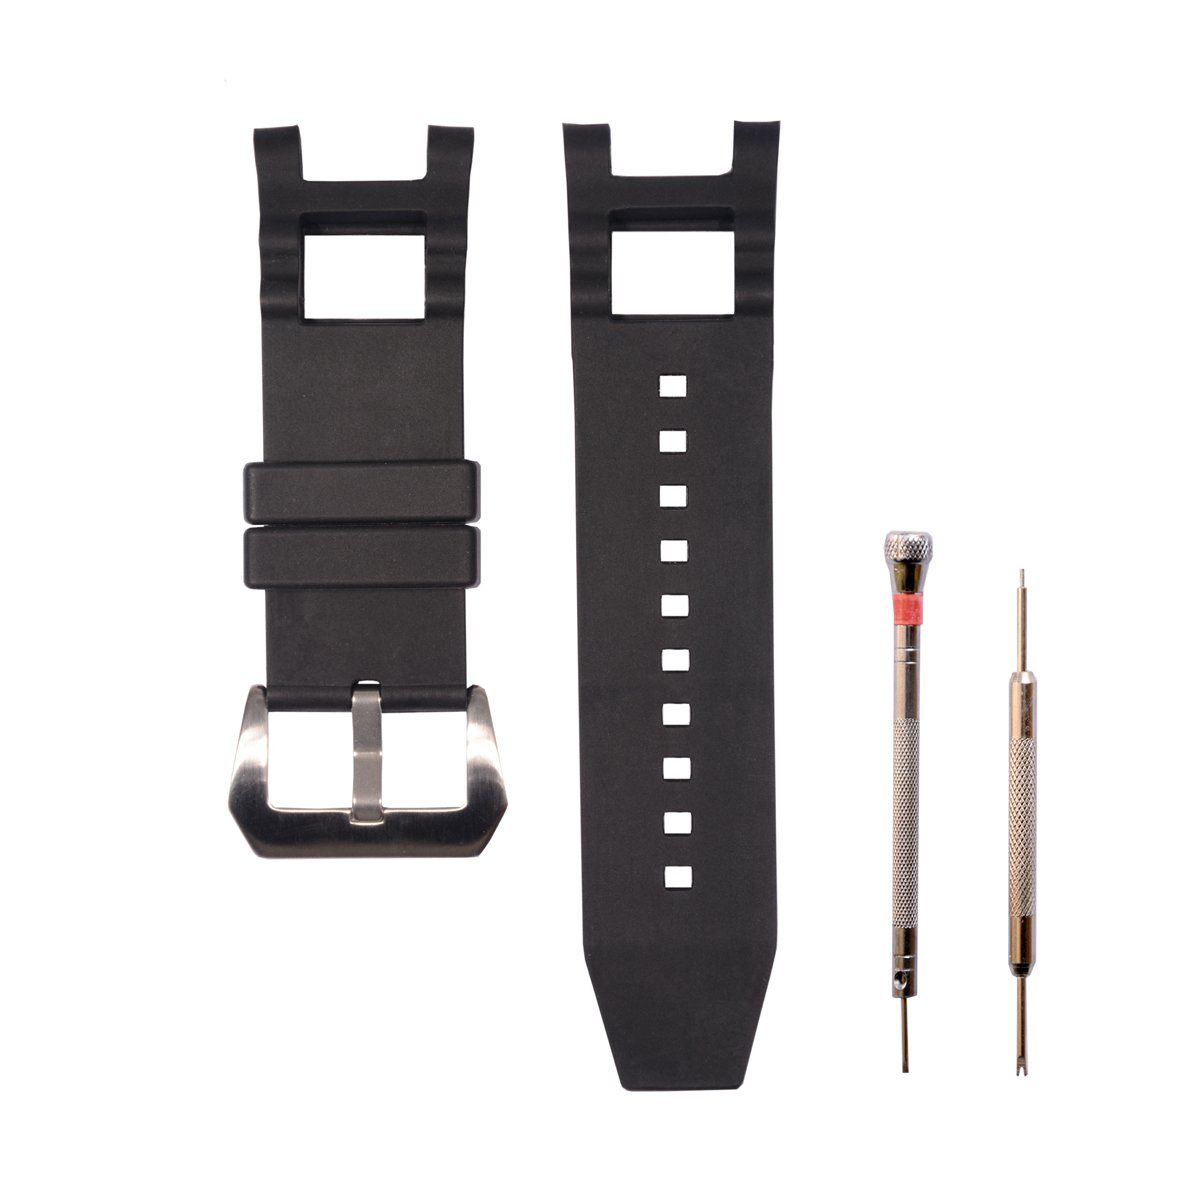 CACA for Invicta Subaqua Noma III - Soft and Durable Rubber Silicone Replacement Watch Band/Strap with Stainless Steel Buckle - Black Invicta Watch Strap